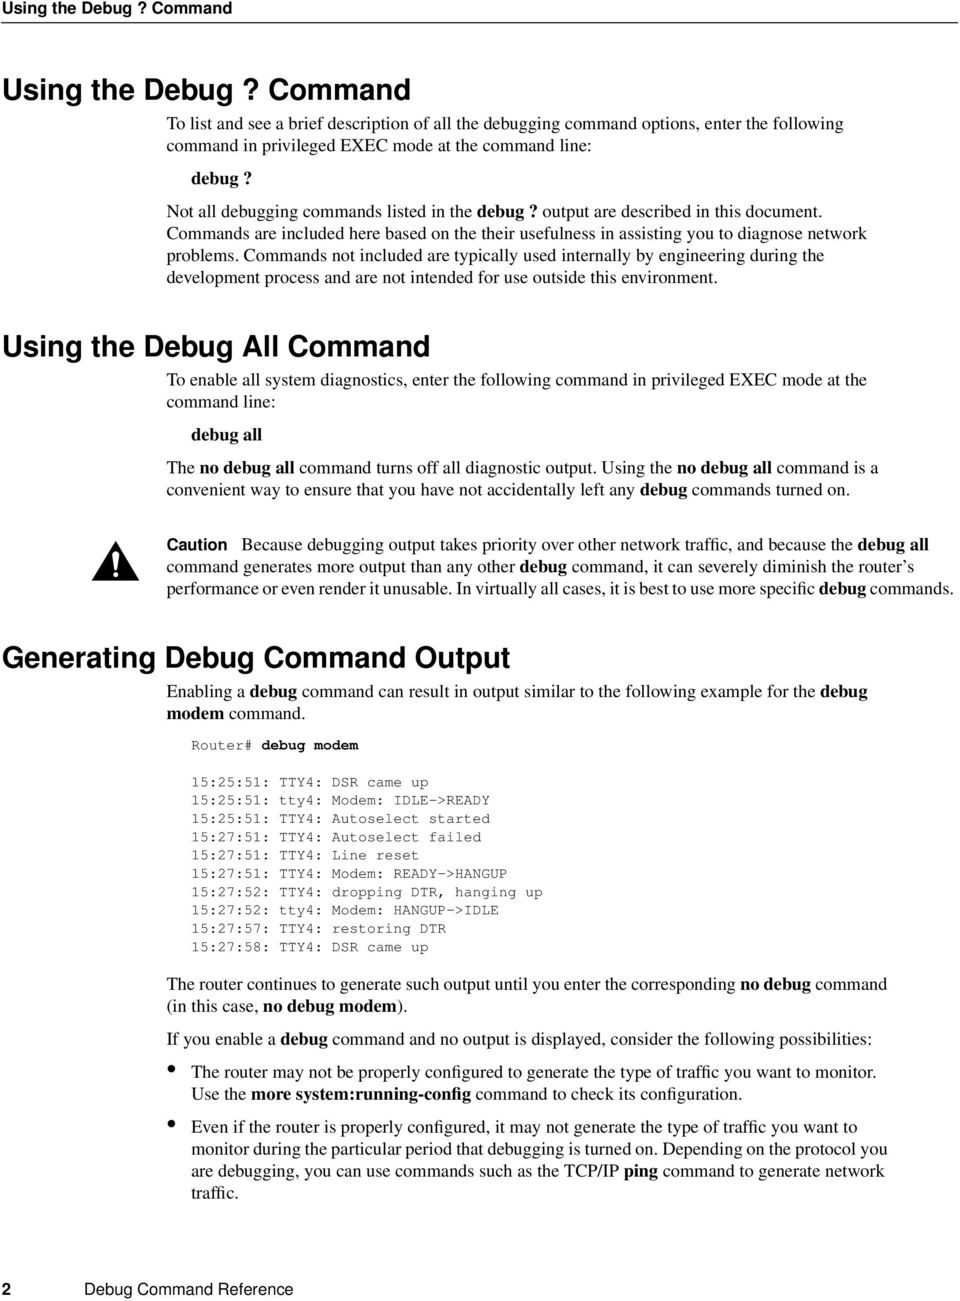 Not all debugging commands listed in the debug? output are described in this document. Commands are included here based on the their usefulness in assisting you to diagnose network problems.